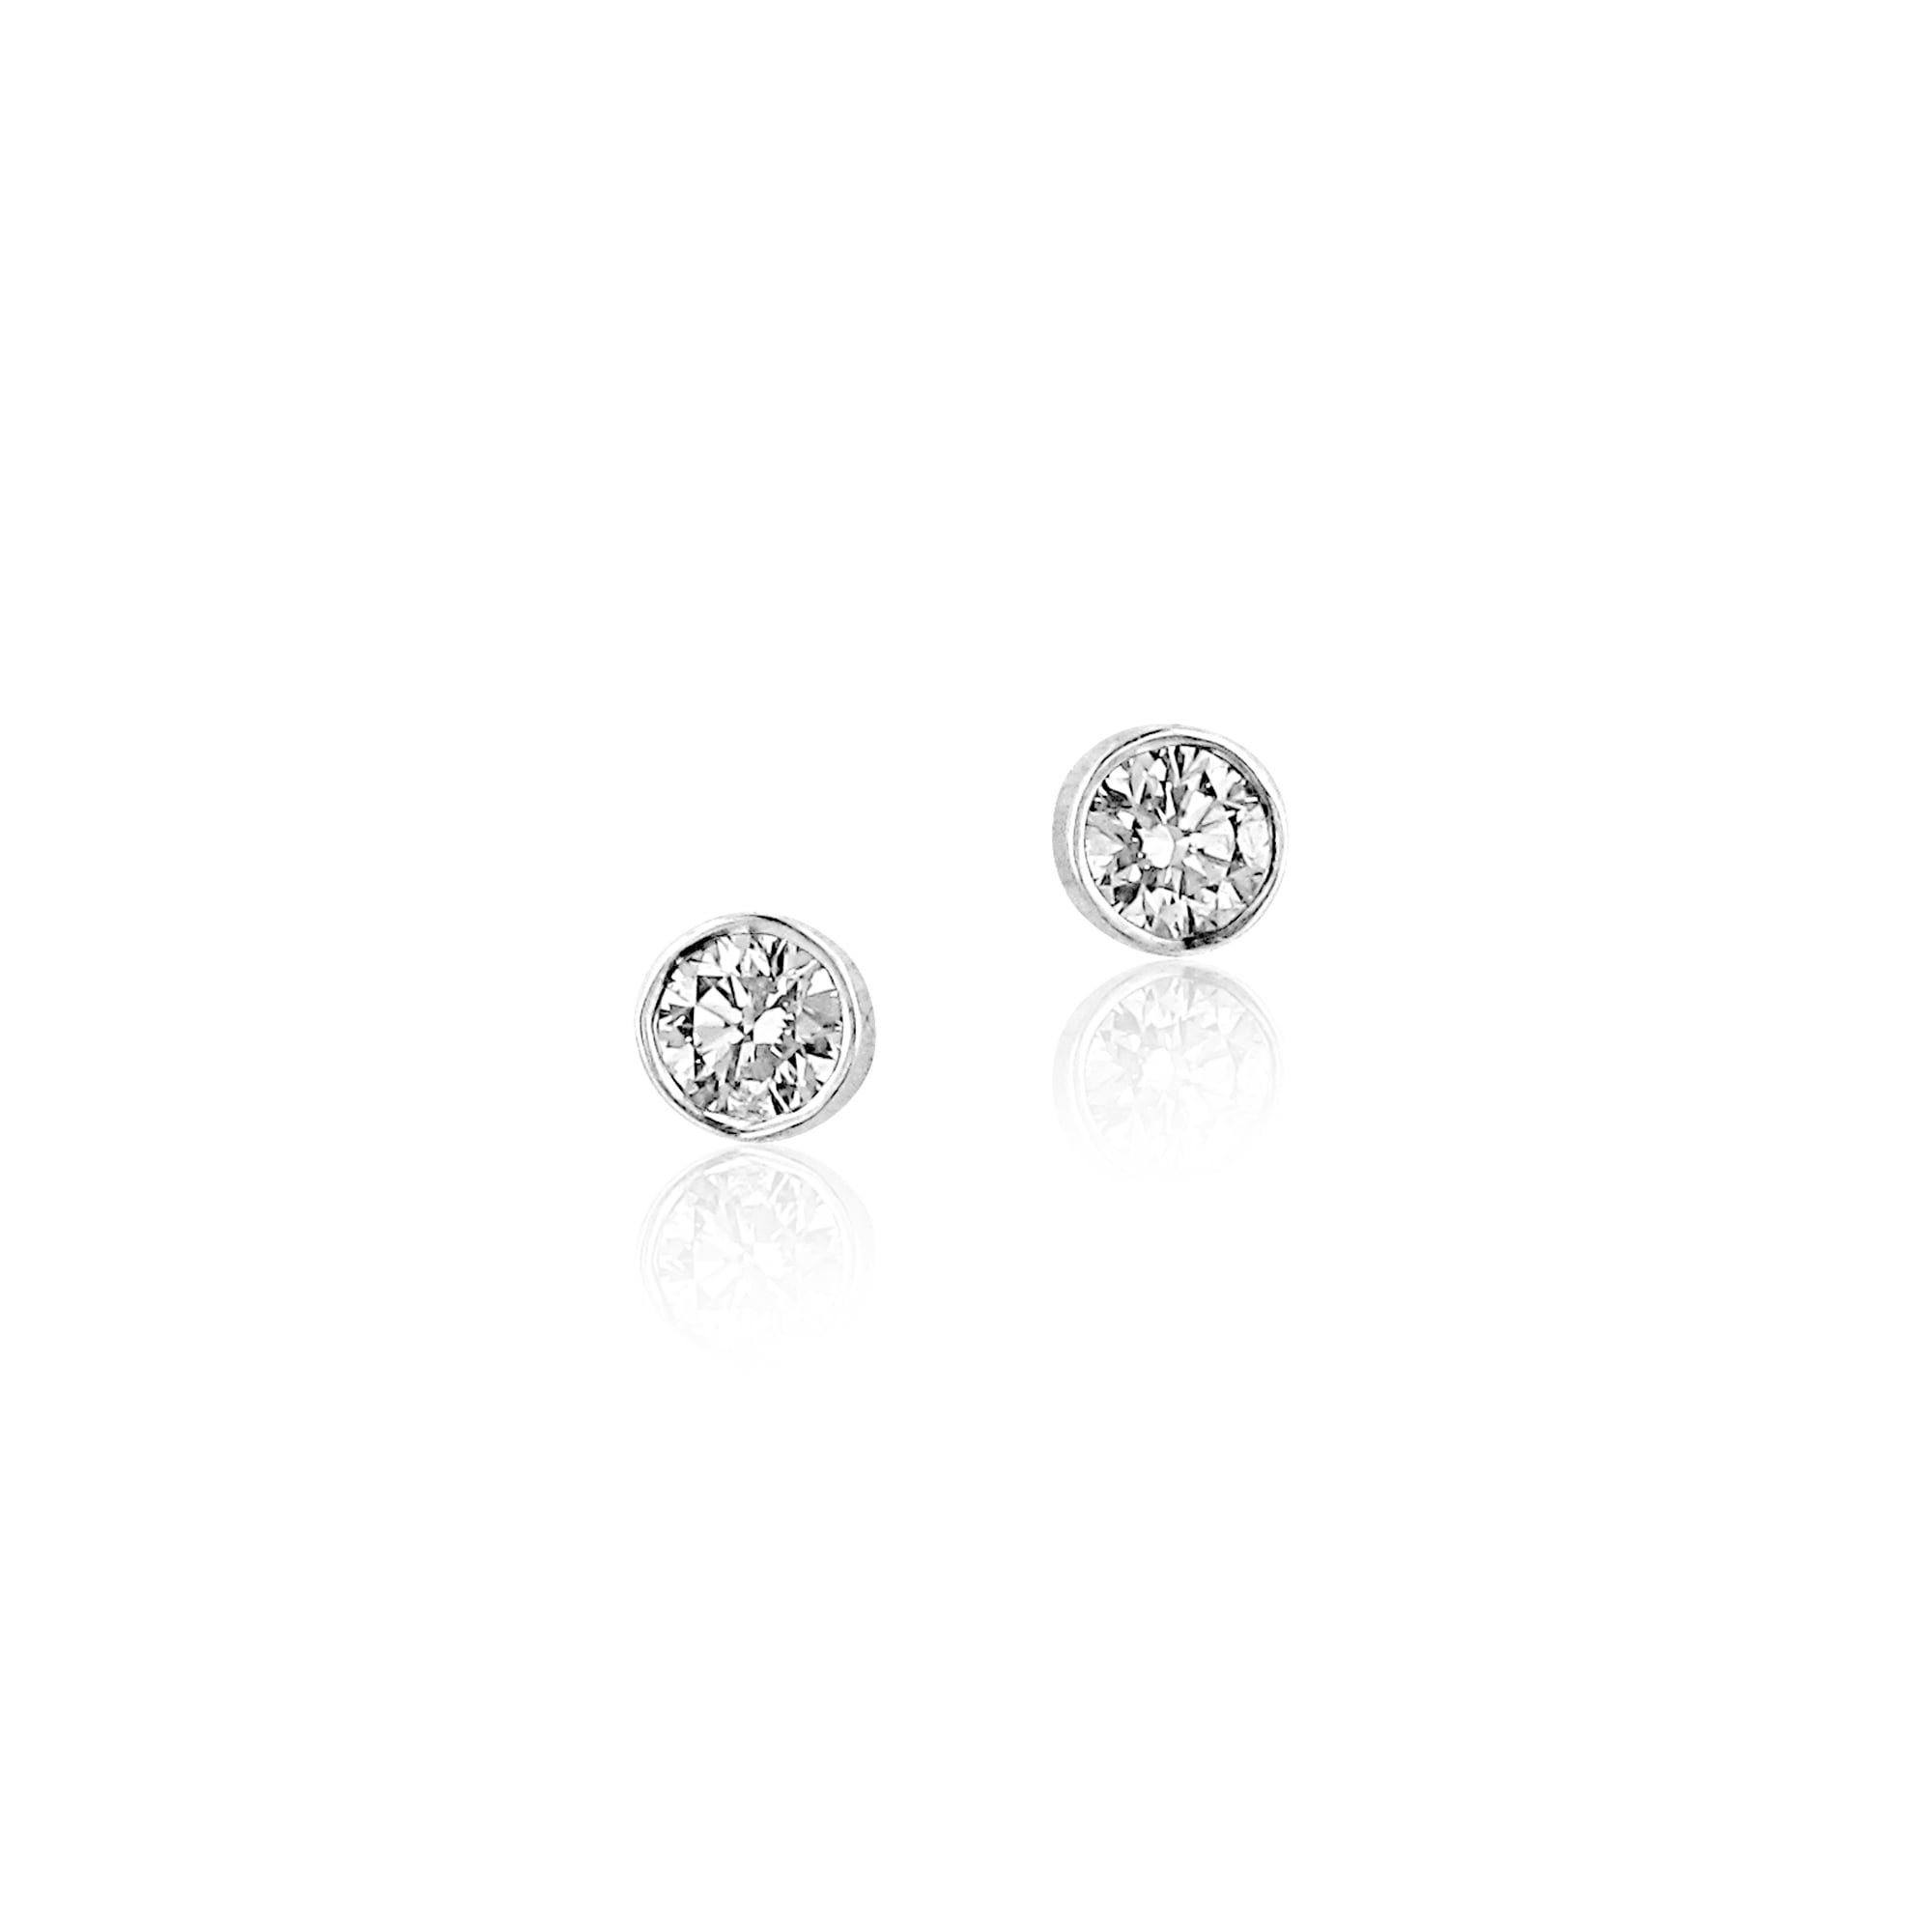 ctw diamond products switzerland earring earrings stud little jewellery